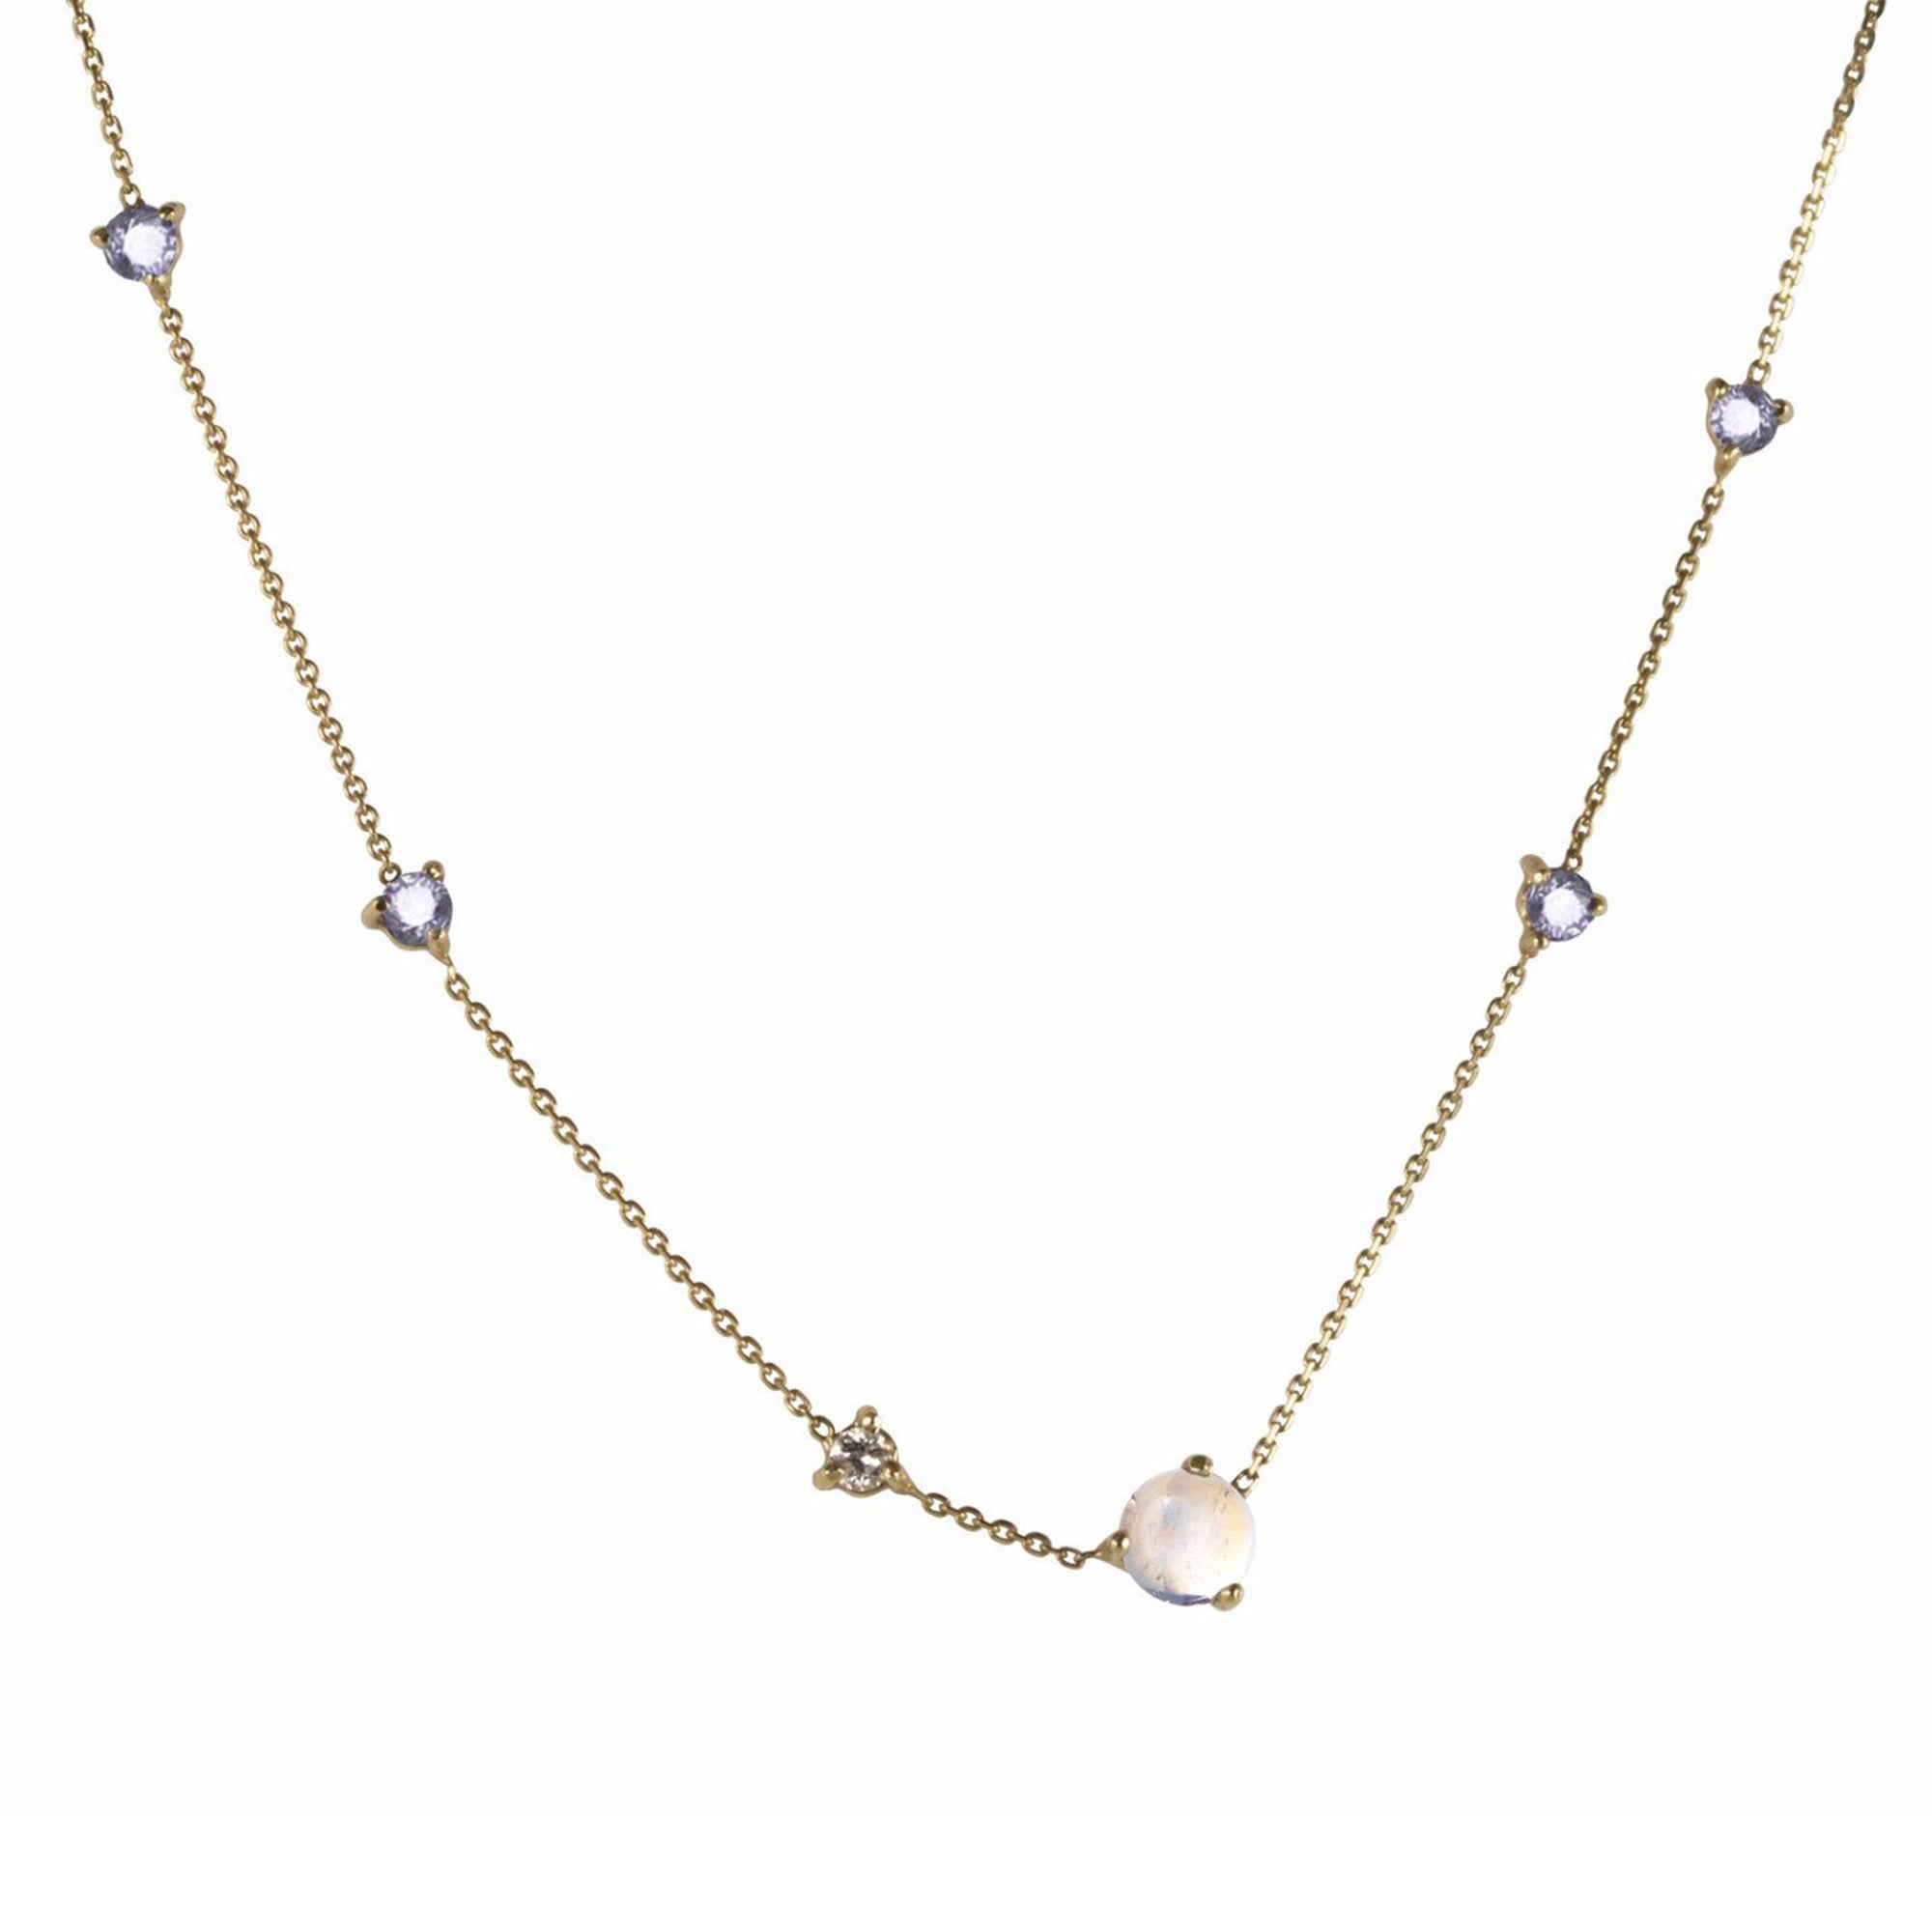 gold moonstone white diamond sapphire Linear Chain Necklace by Wwake for Broken English Jewelry